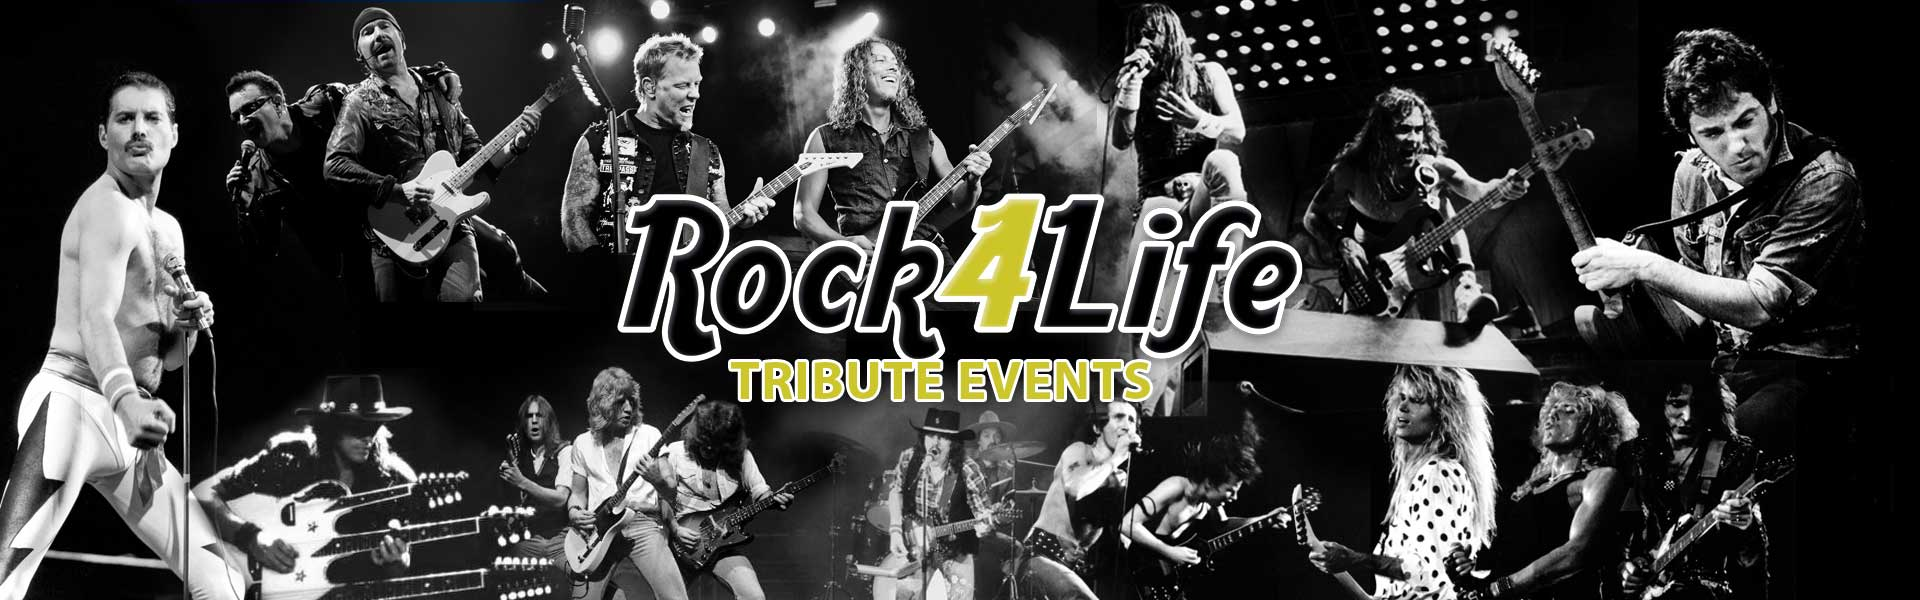 rock4life_tribute_events_02